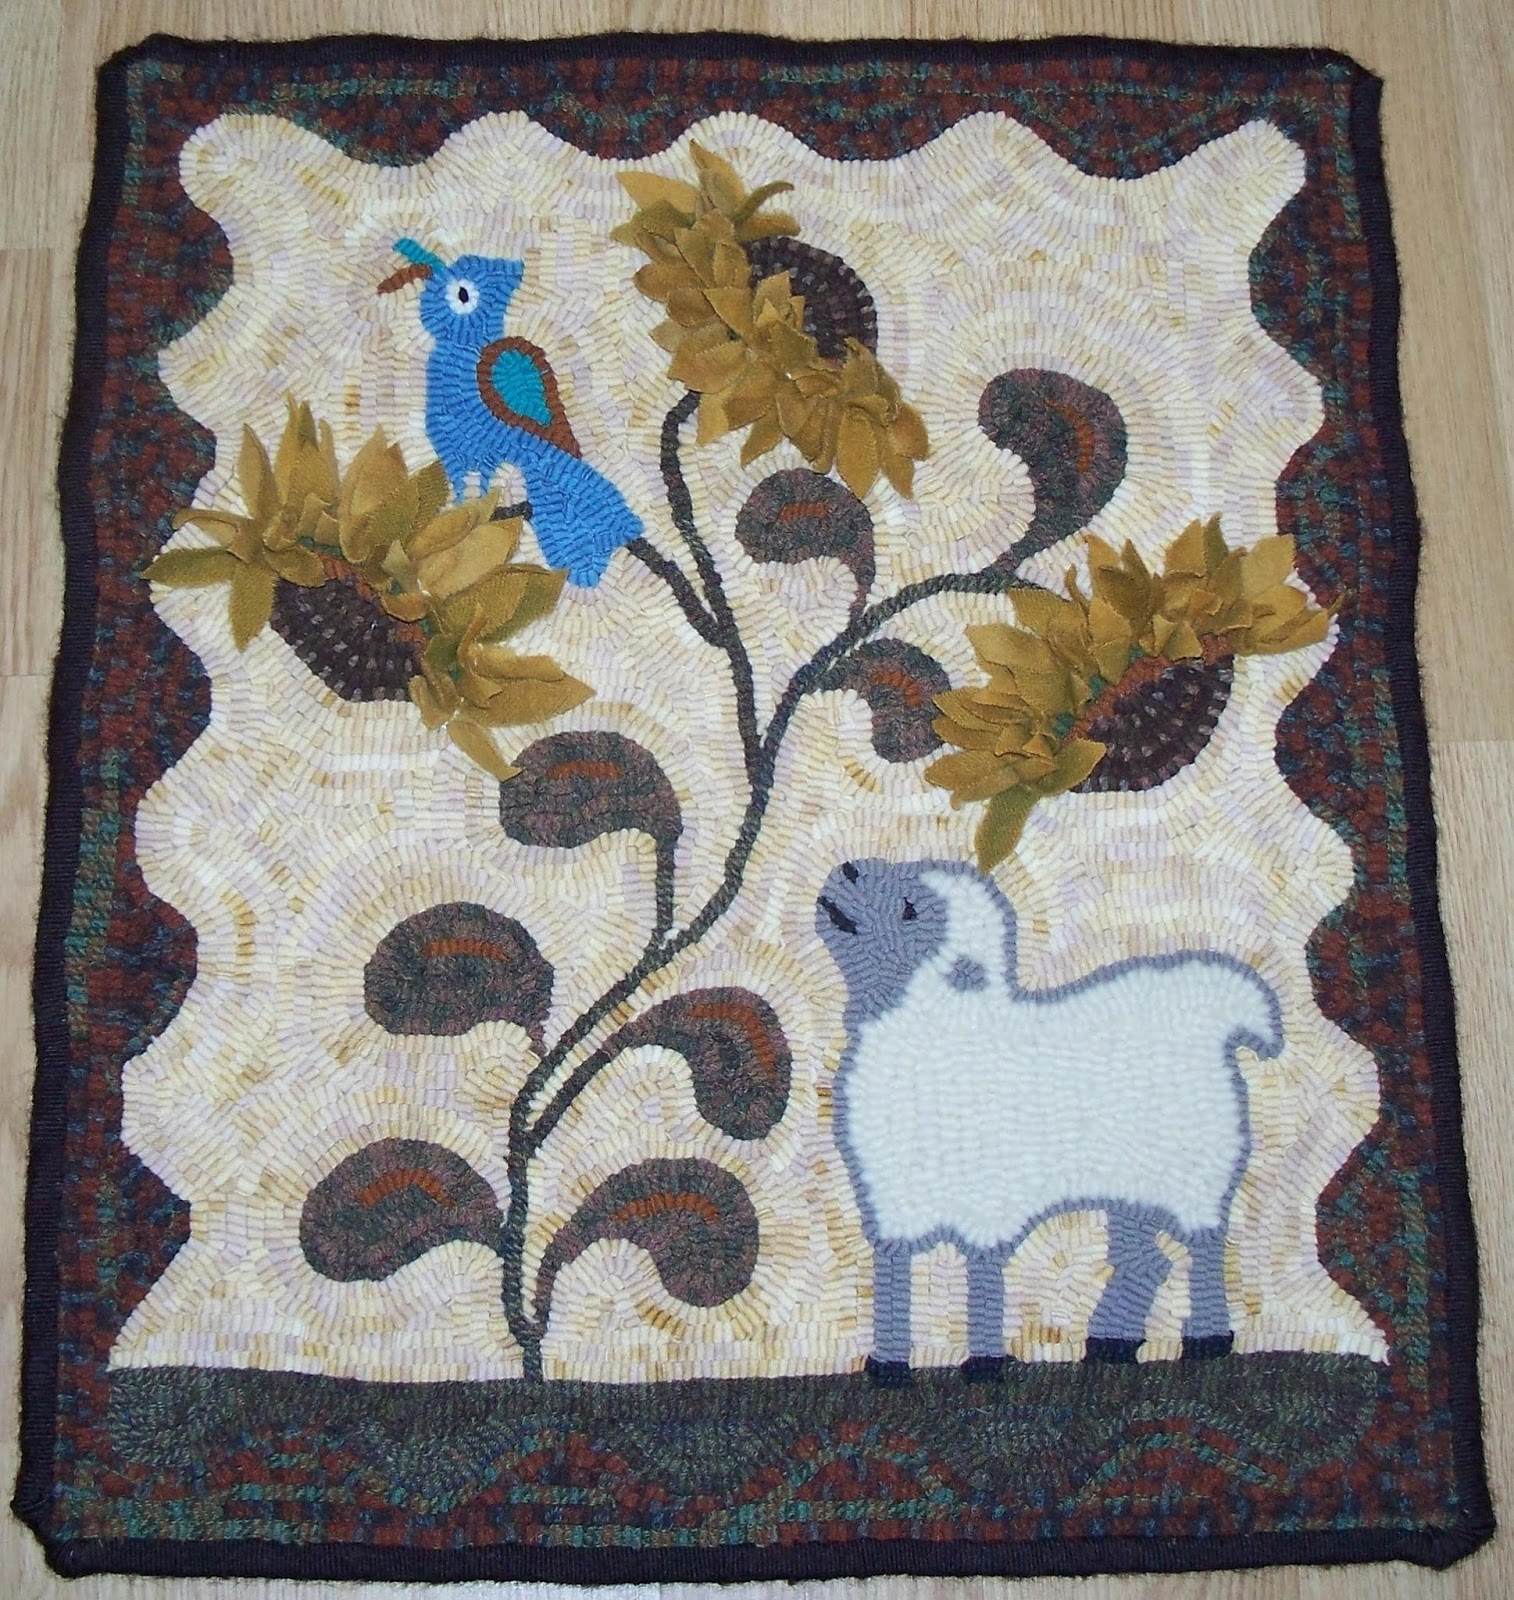 Kris Miller From Spruce Ridge Studios Rug Of The Day